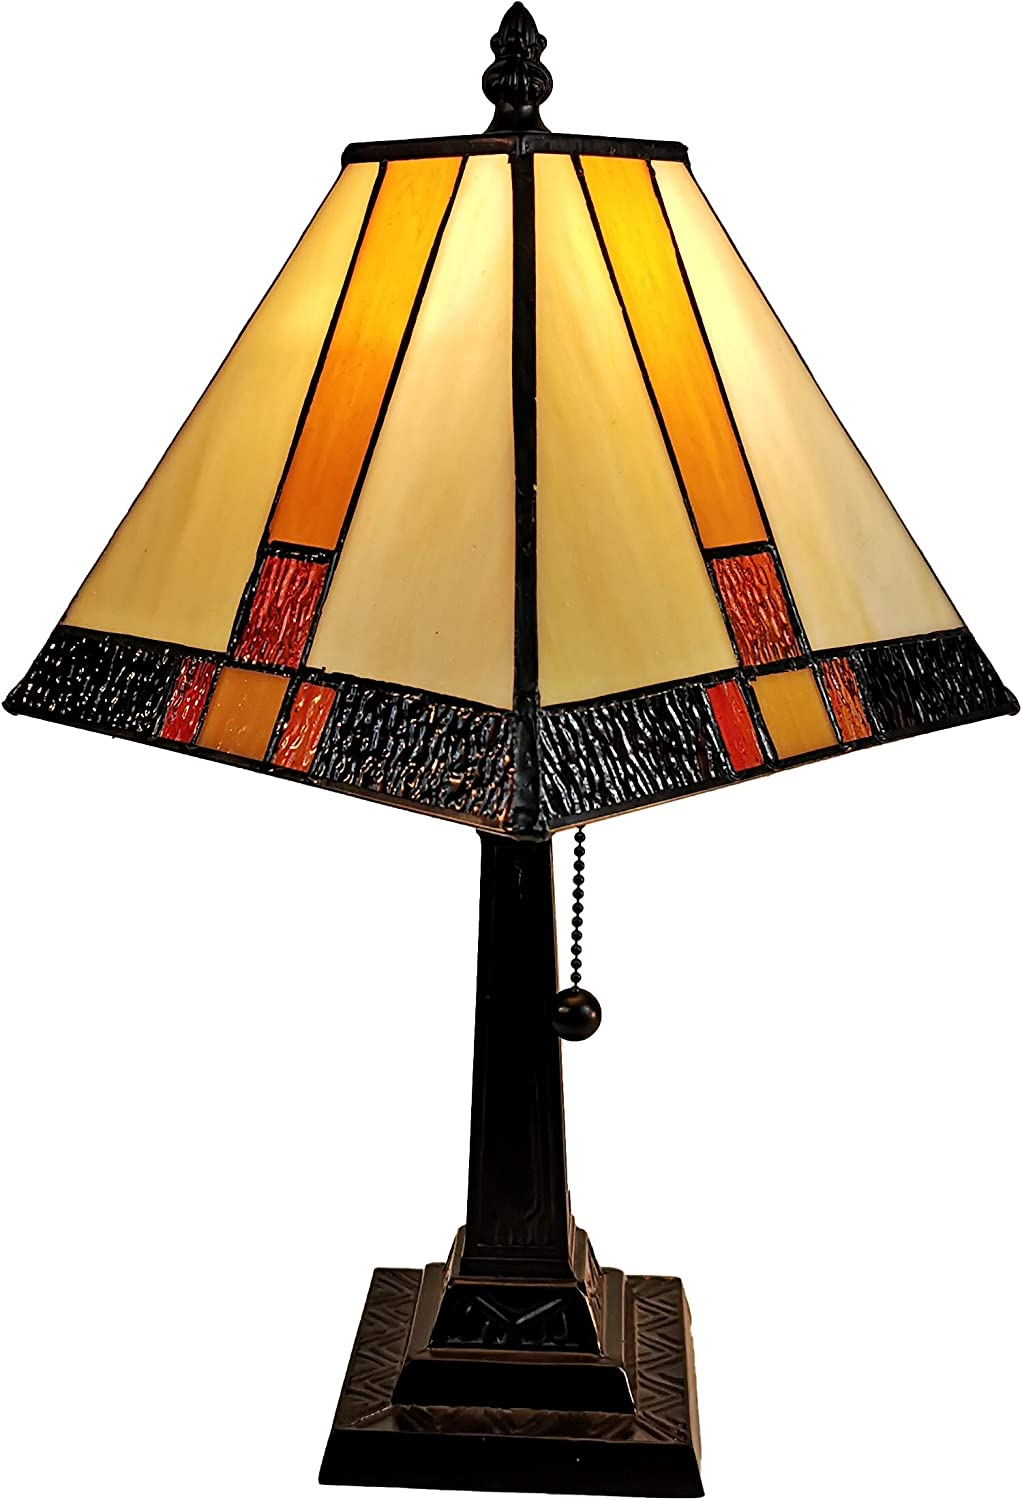 "Tiffany Style Mini Accent Lamp Mission 15"" Tall Stained Glass Red Yellow Tan Brown Vintage Antique Light Décor Nightstand Living Room Bedroom Office Handmade Gift AM208TL08B Amora Lighting"